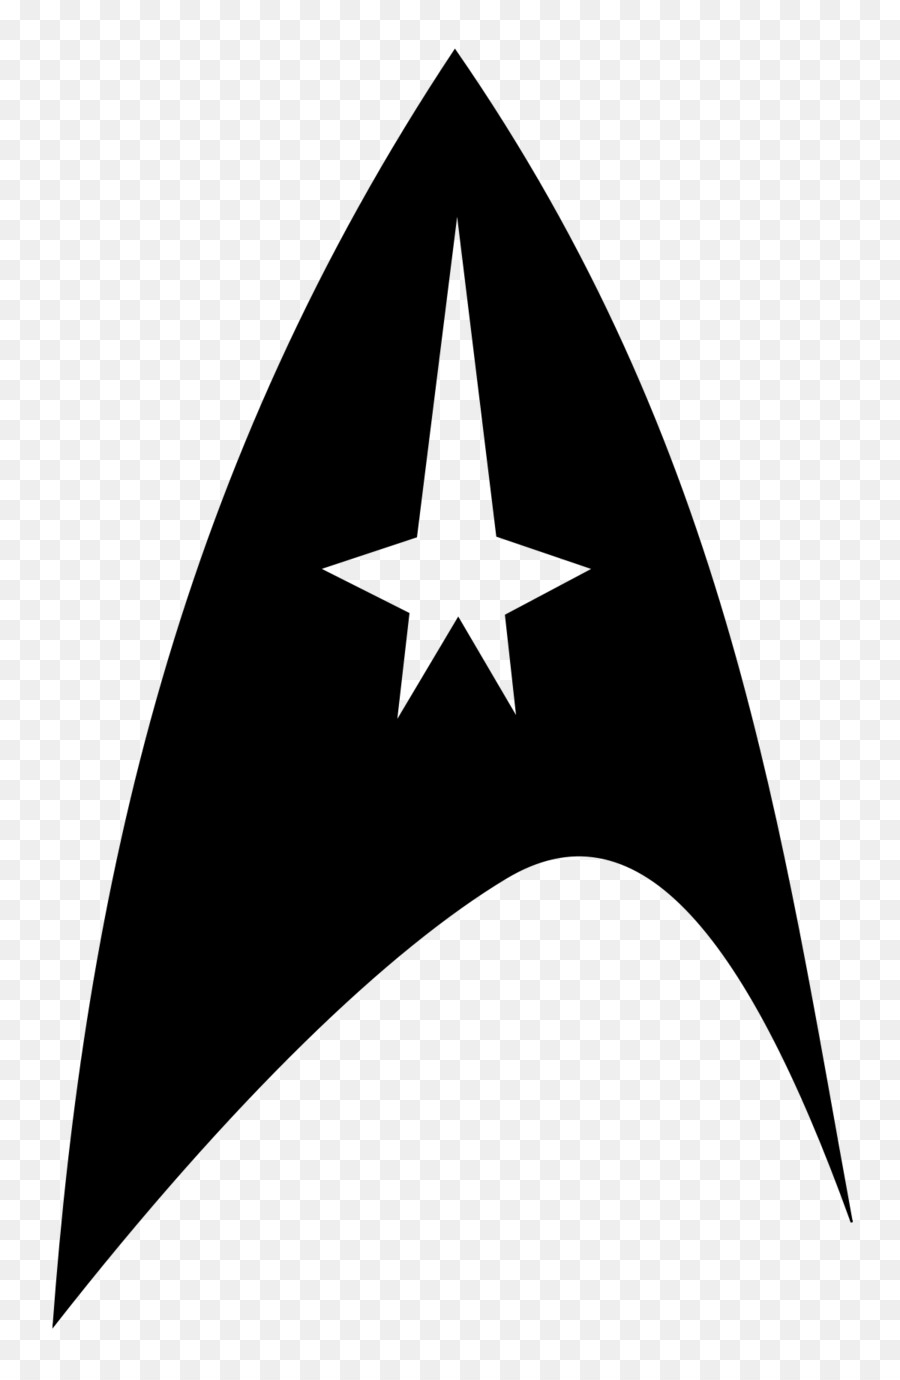 star trek symbol starfleet logo clip art star trek png download rh kisspng com star trek free vector